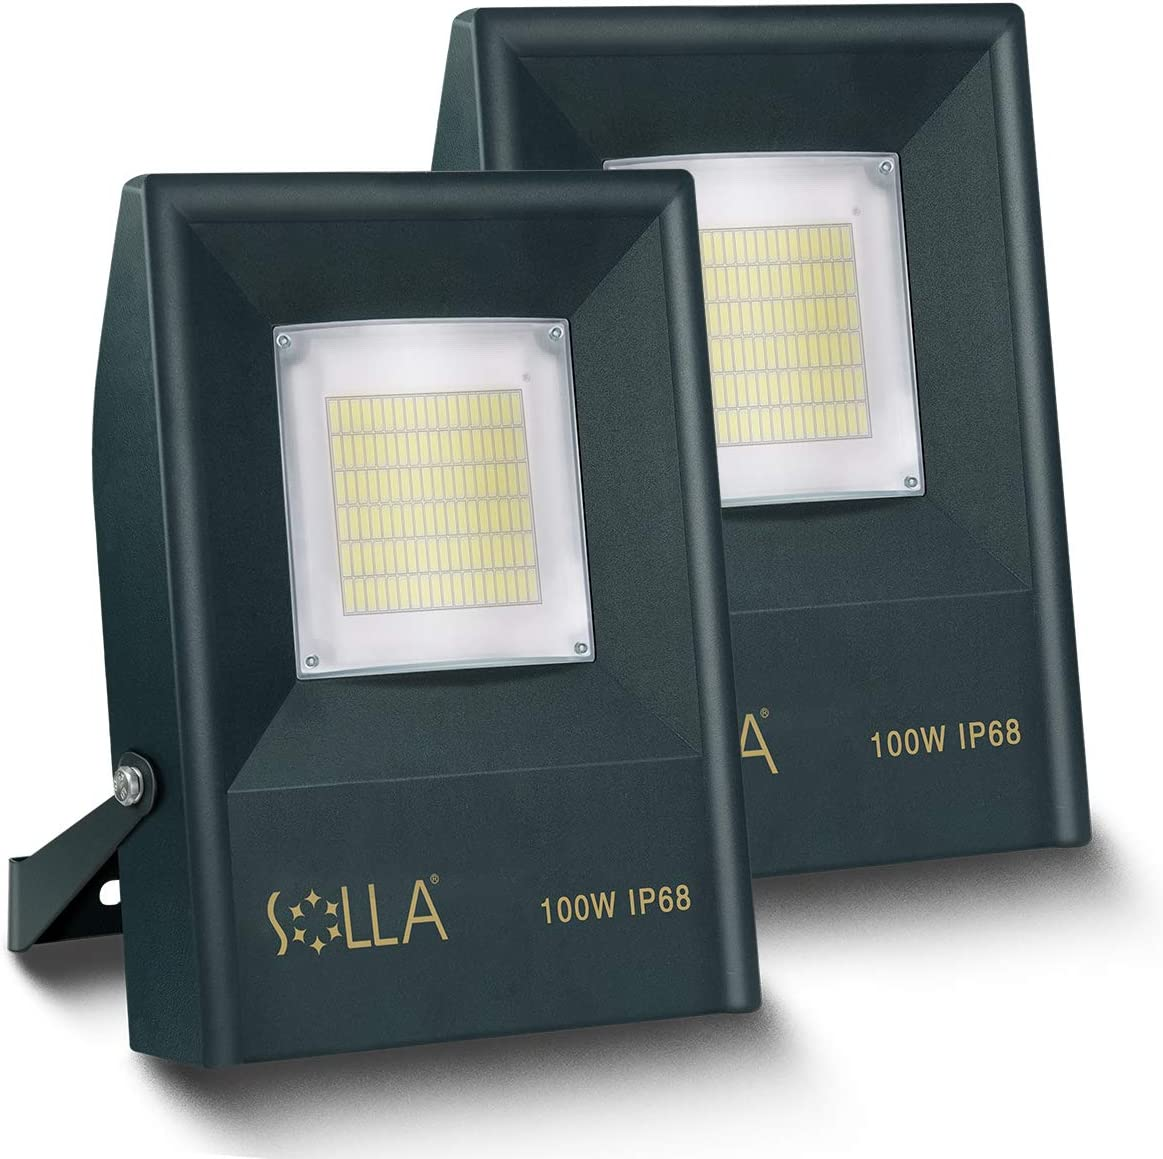 SOLLA 2 Pack 100W LED Flood Light Outdoor, IP68 Fully Waterproof Exterior Security Lights, 5000K Daylight, Super Bright Indoor Outdoor Lighting for Garage Yard Patio Entrance and Parking lot